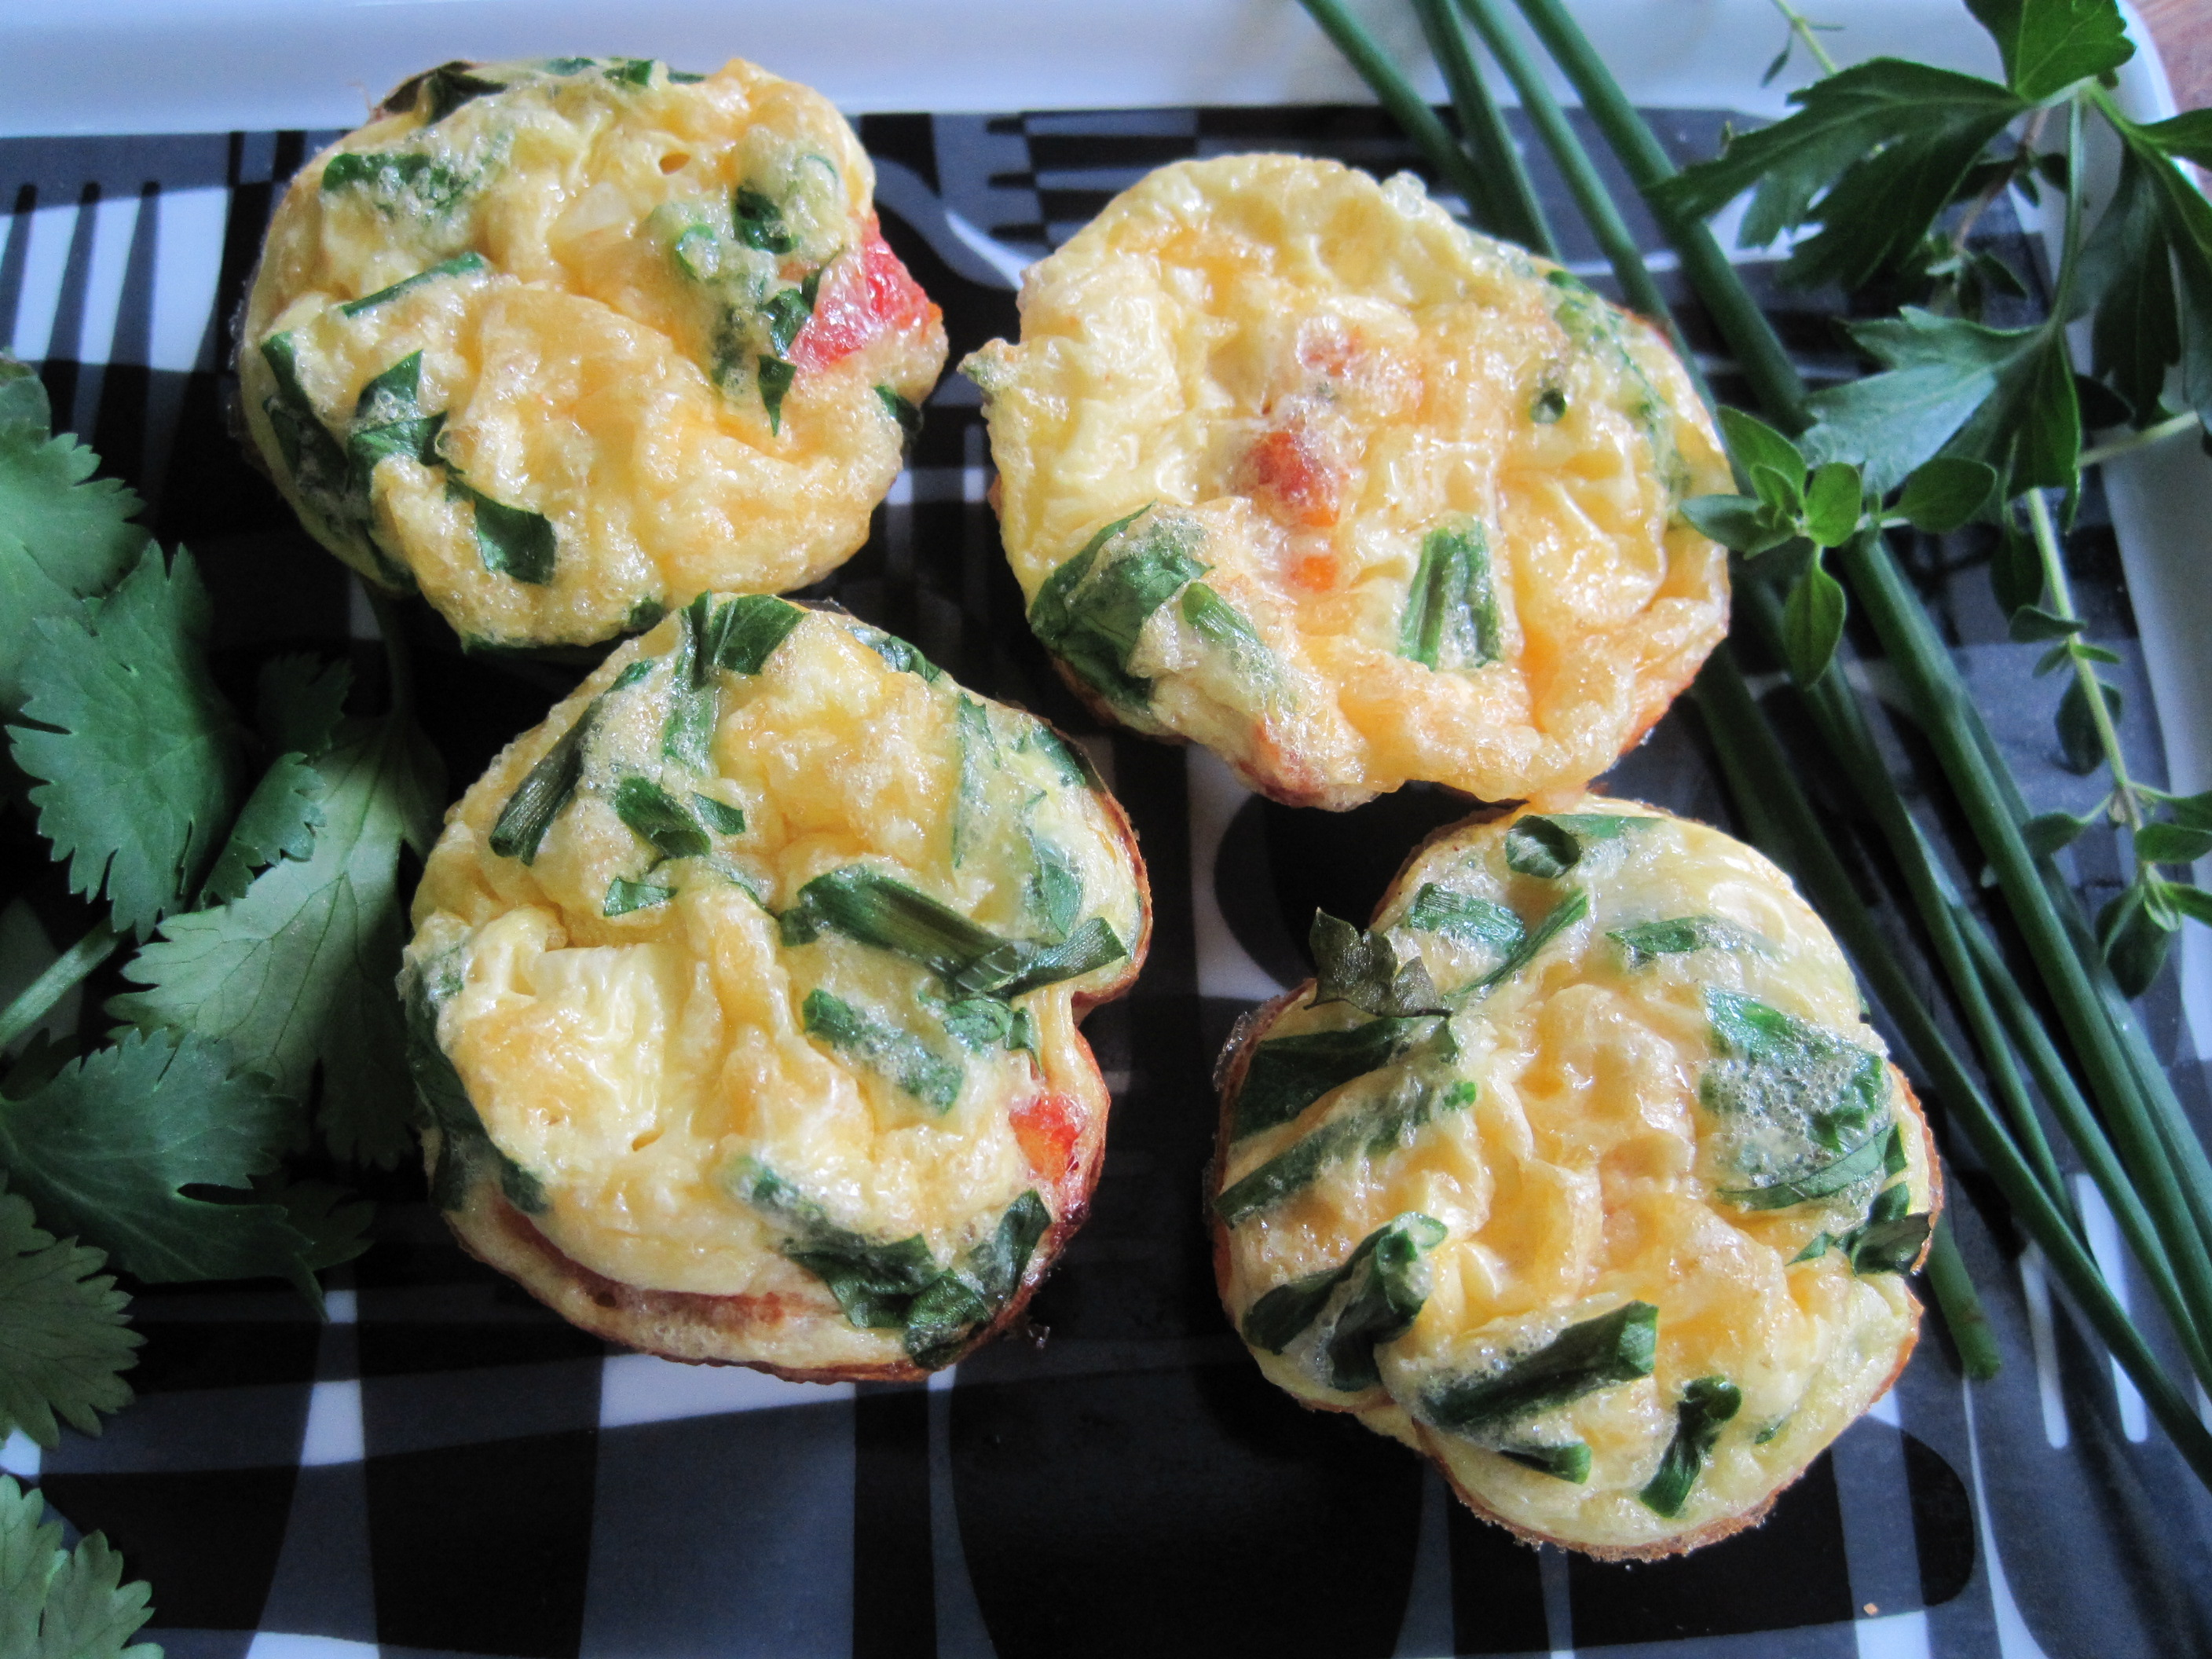 Chives, Sun-Dried Tomato, Parsley and Goat Cheese Frittatas